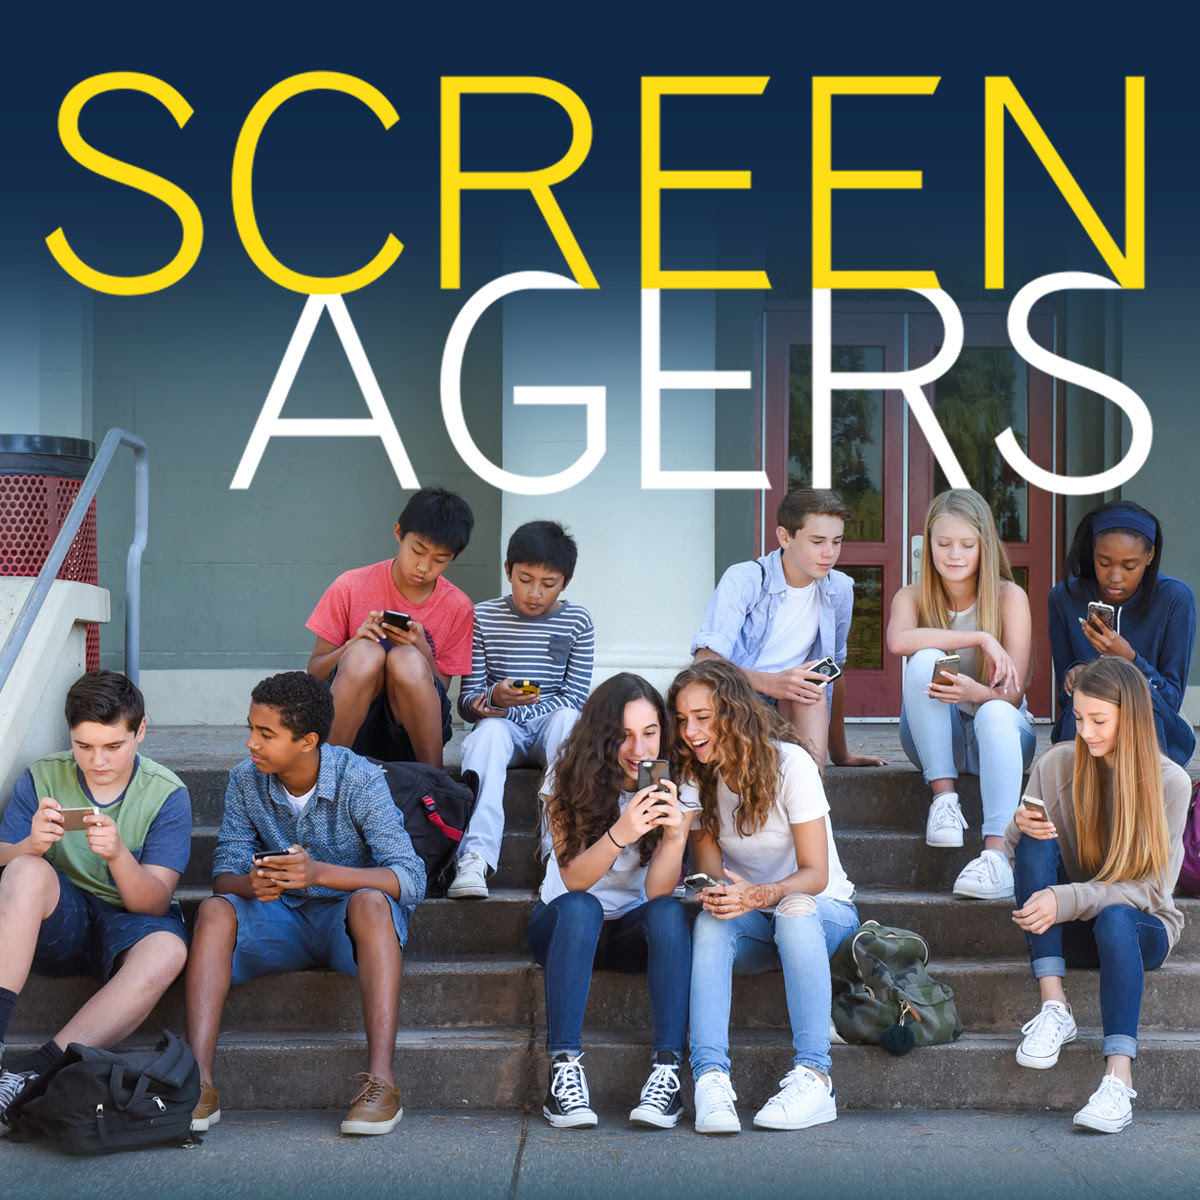 Screenagers Film Presented By Lord of Life Lutheran Church